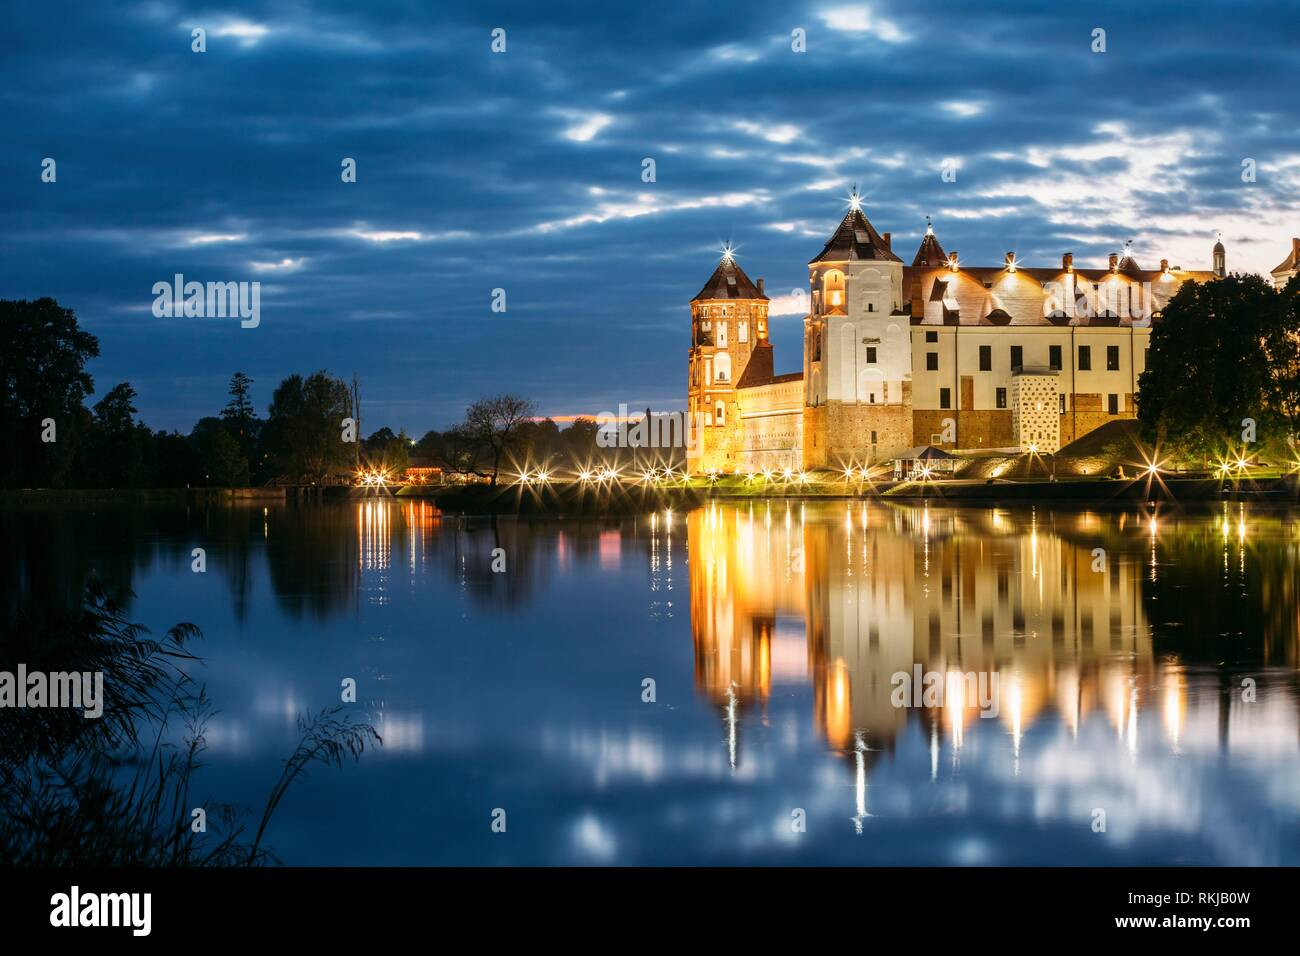 Mir, Belarus. Mir Castle Complex In Bright Evening Illumination With Glow Reflections On Lake Water. Famous Landmark, Ancient Gothic Monument Of - Stock Image